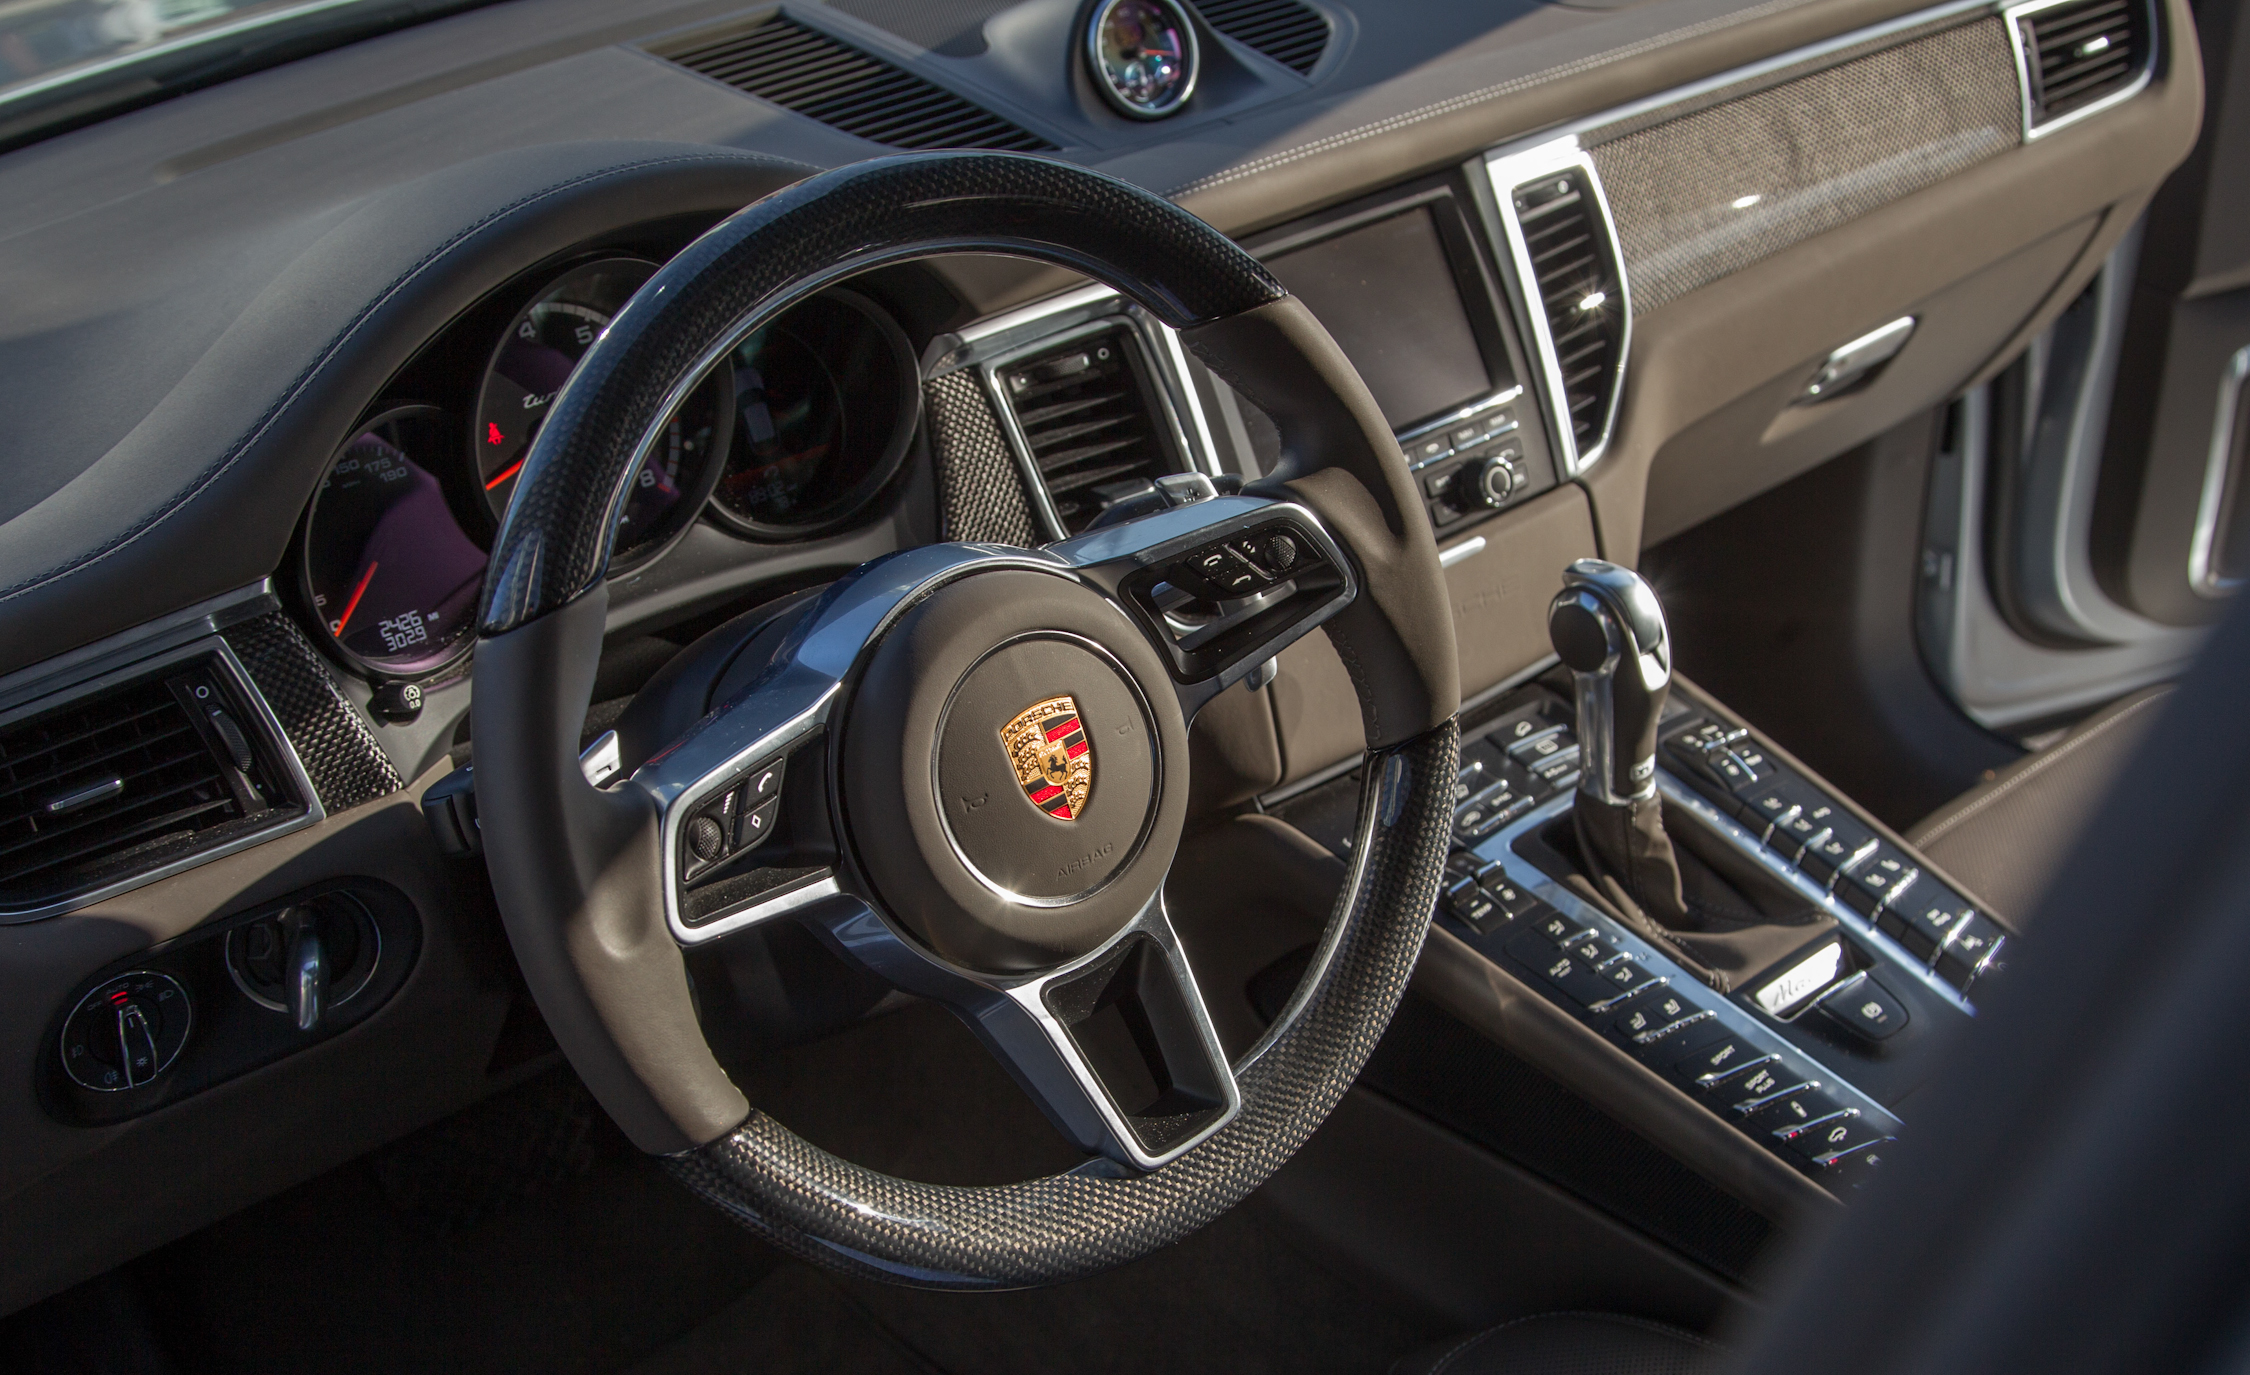 2015 Porsche Macan Turbo Interior (View 3 of 20)